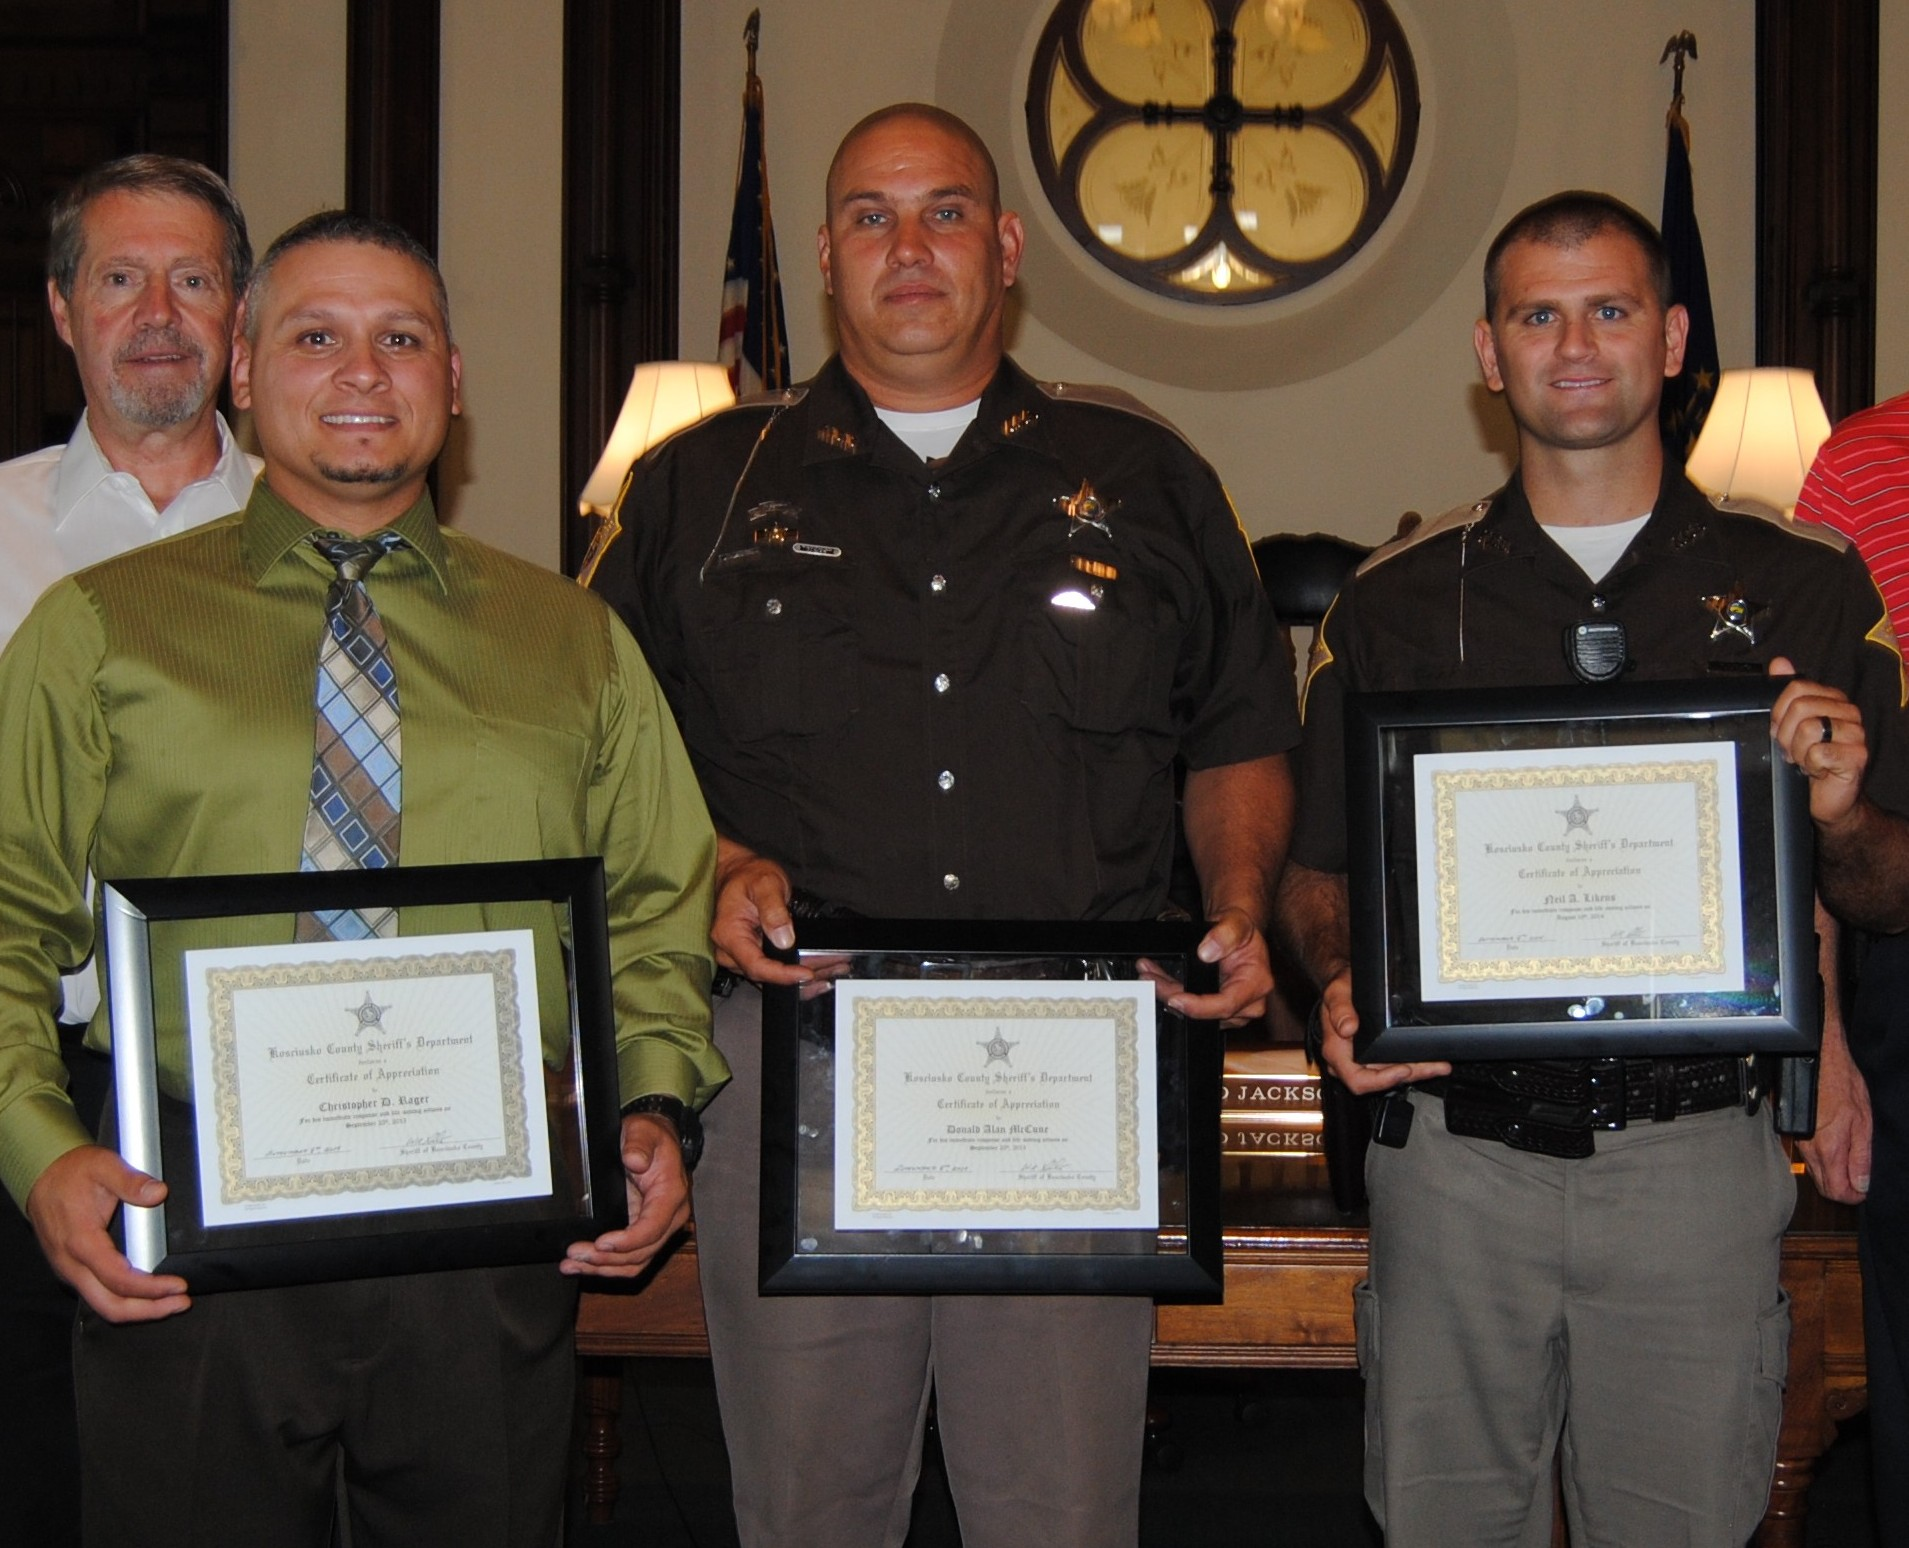 Indiana kosciusko county syracuse - Three Kosciusko County Sheriff S Deputies Were Honored At Tuesday S County Commissioners Meeting In Warsaw The